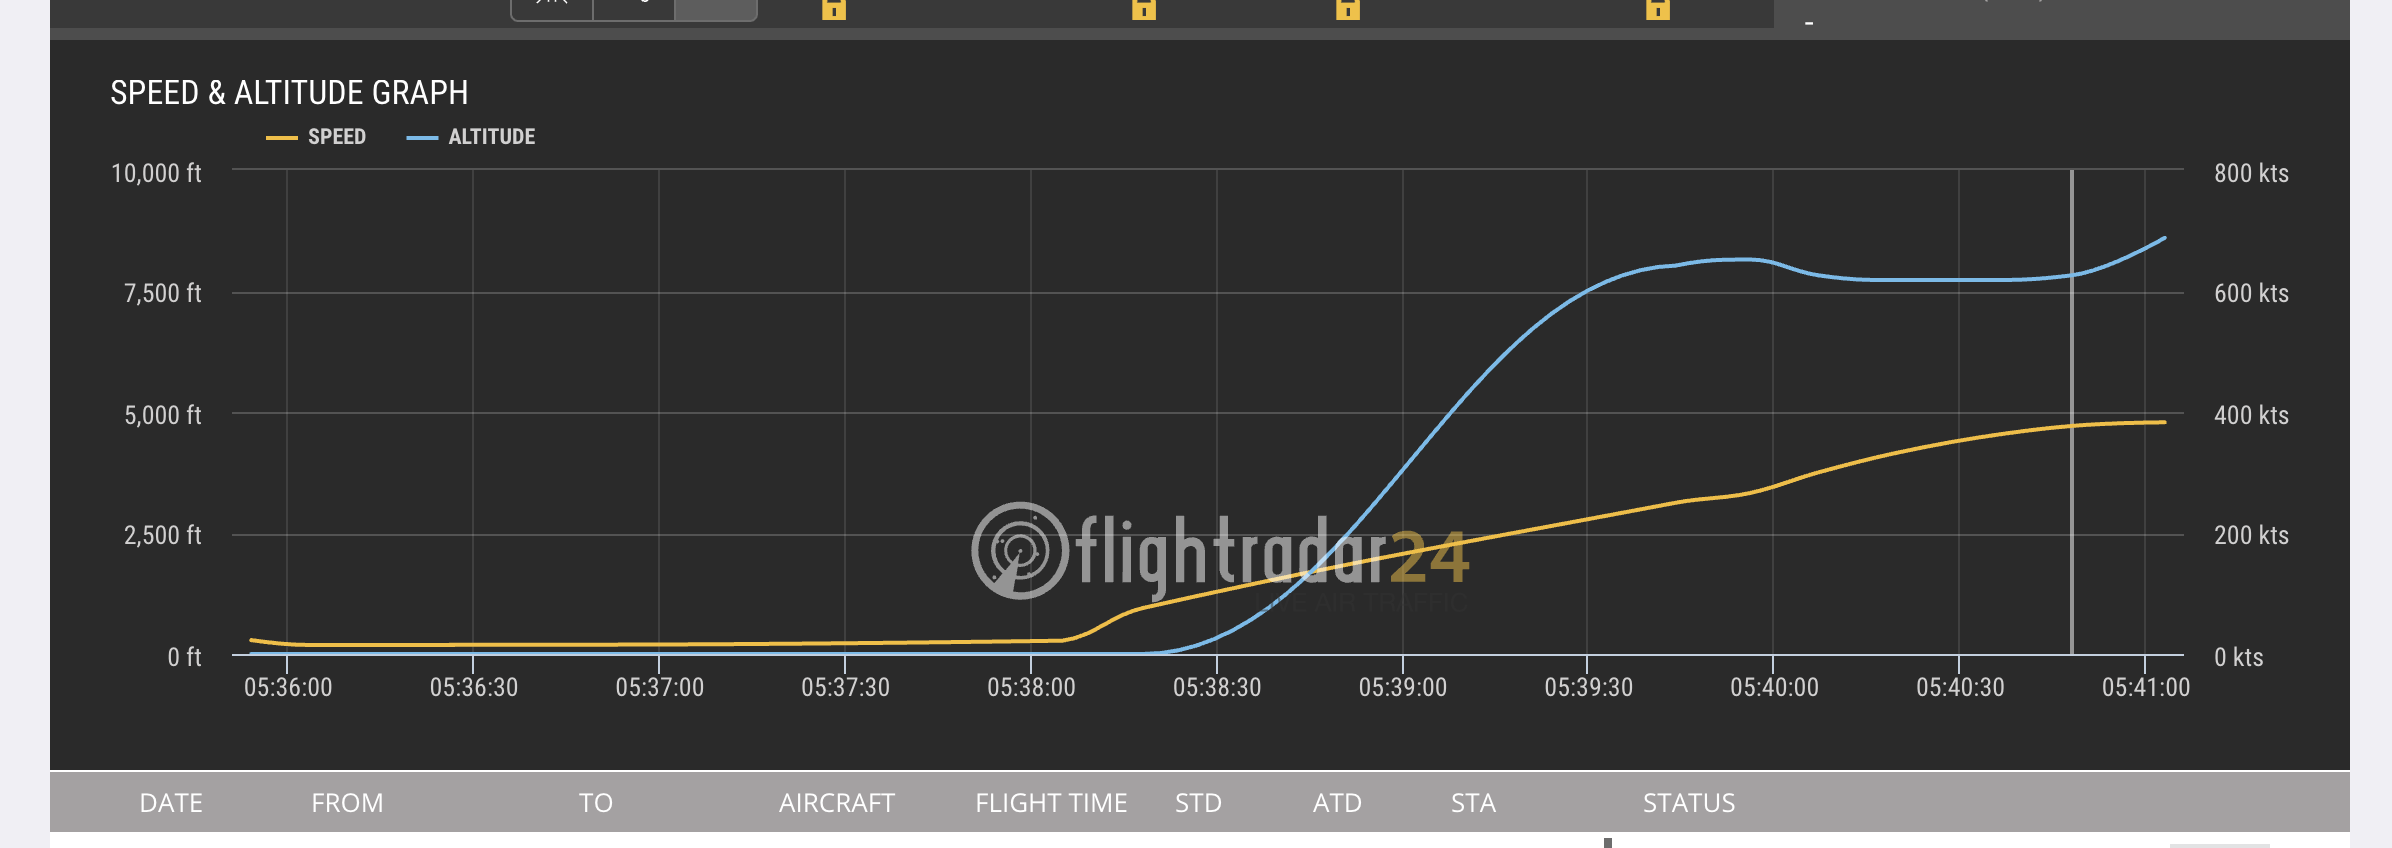 Data from Ethiopian Airlines Flight 302 shows a sudden dip in its ascent out of Addis Ababa. The vertical velocity of the airplane was unstable within moments after takeoff.